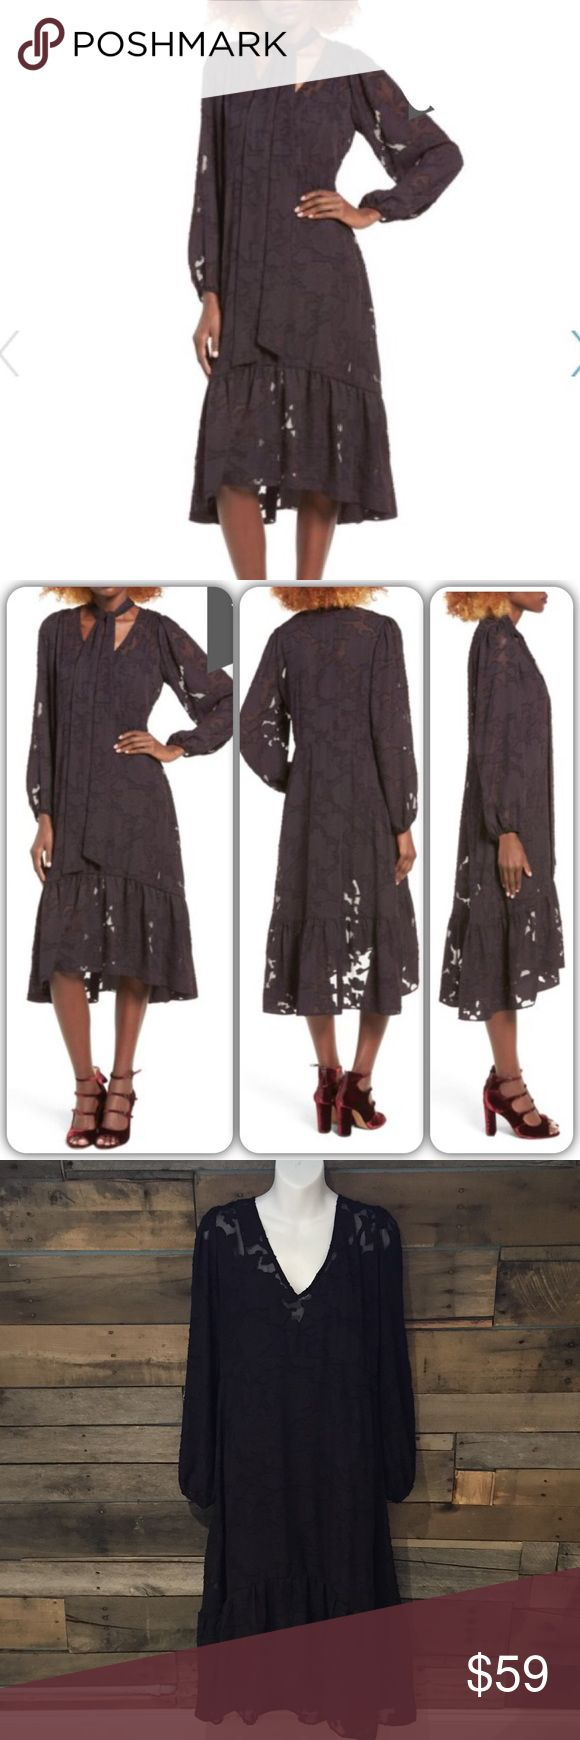 """🆕 Sun & Shadows Tie Neck Fil Coupe dress. Small NWT Sun & Shadows Tie Neck Fil Coupe black dress. Small. 44"""" long. Does have neck tie (not photographed😖)  Polyester. Sun & Shadow  Dresses"""